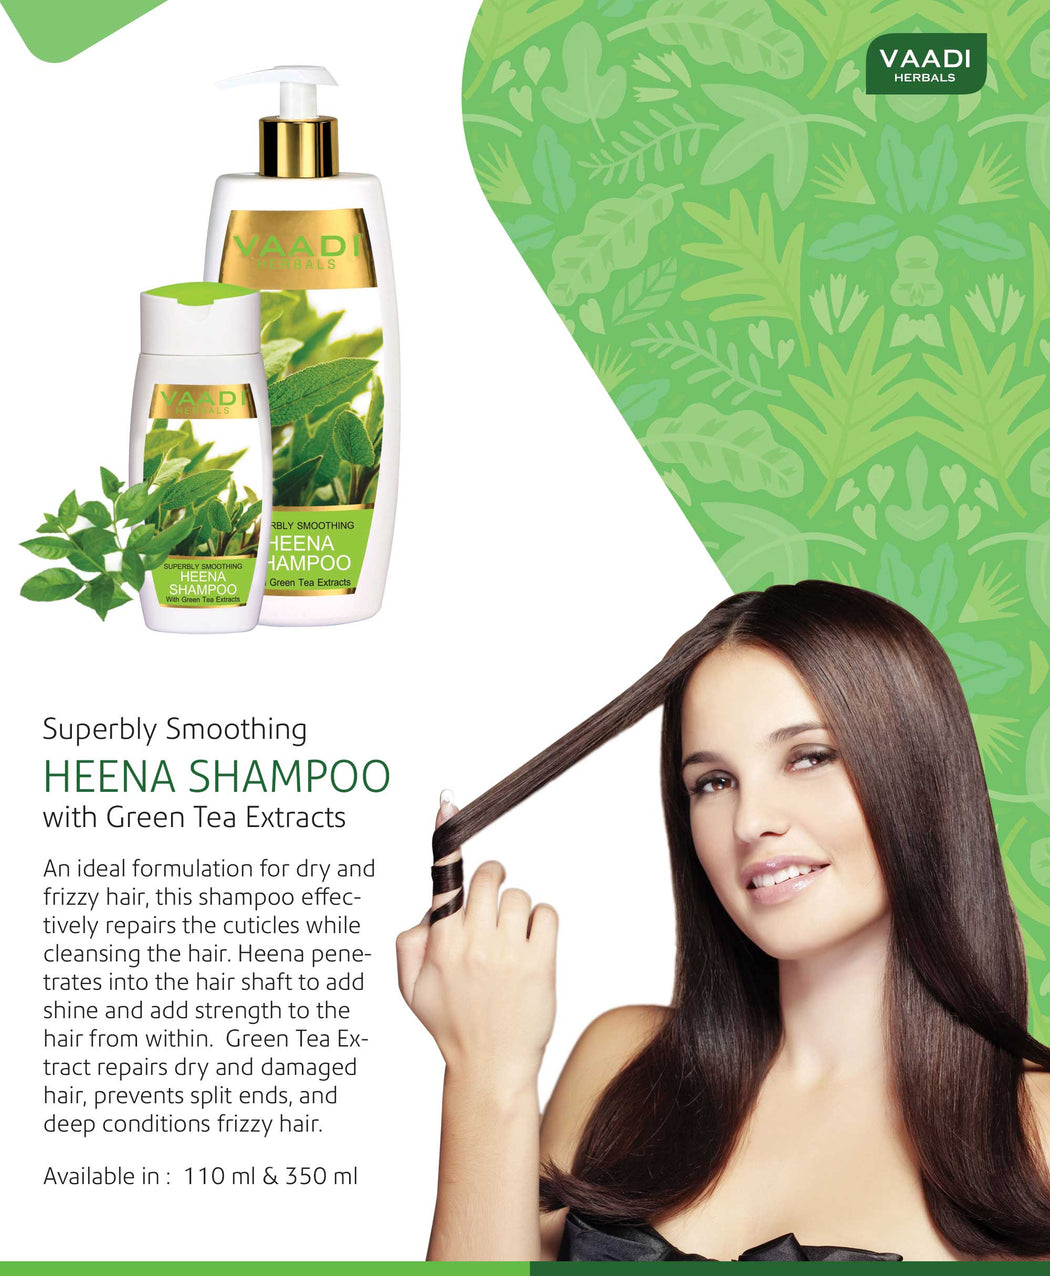 Superbly Smoothing Organic Heena Shampoo with Green Tea Extract (110 ml/4 fl oz)